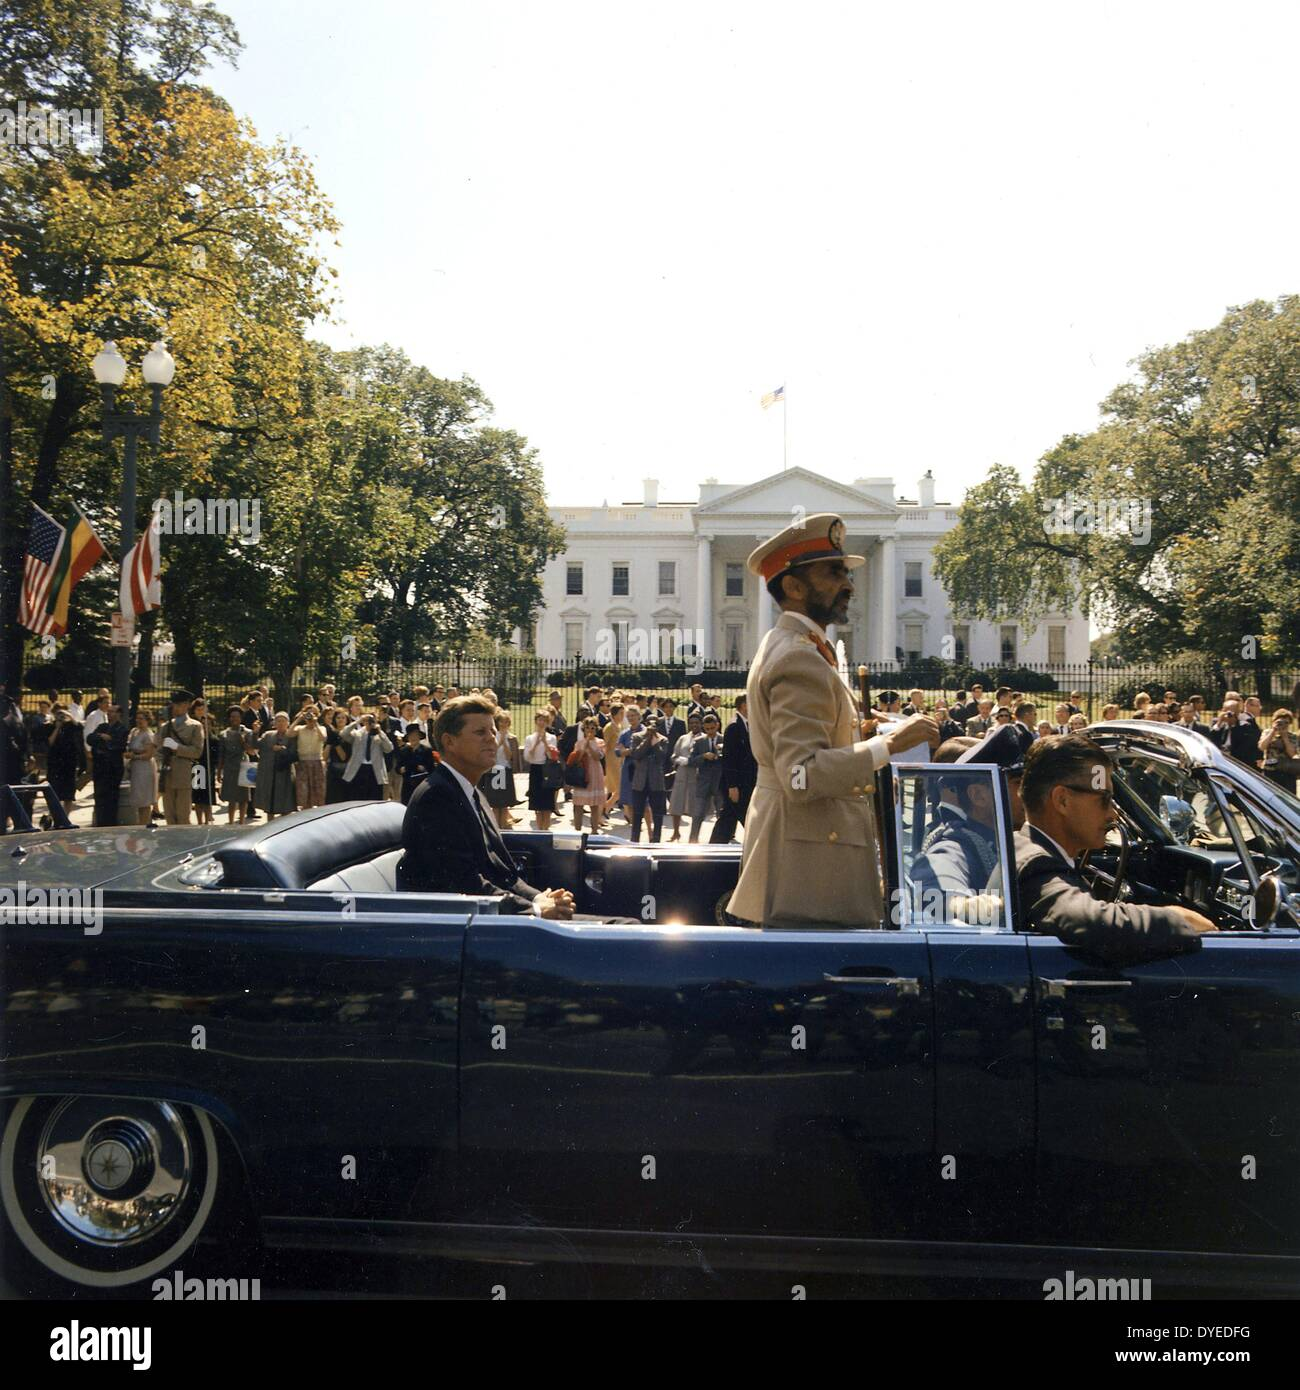 Emperor haile selassi 1892-1975, of Ethiopia with President John Kennedy in Washington 1963 - Stock Image